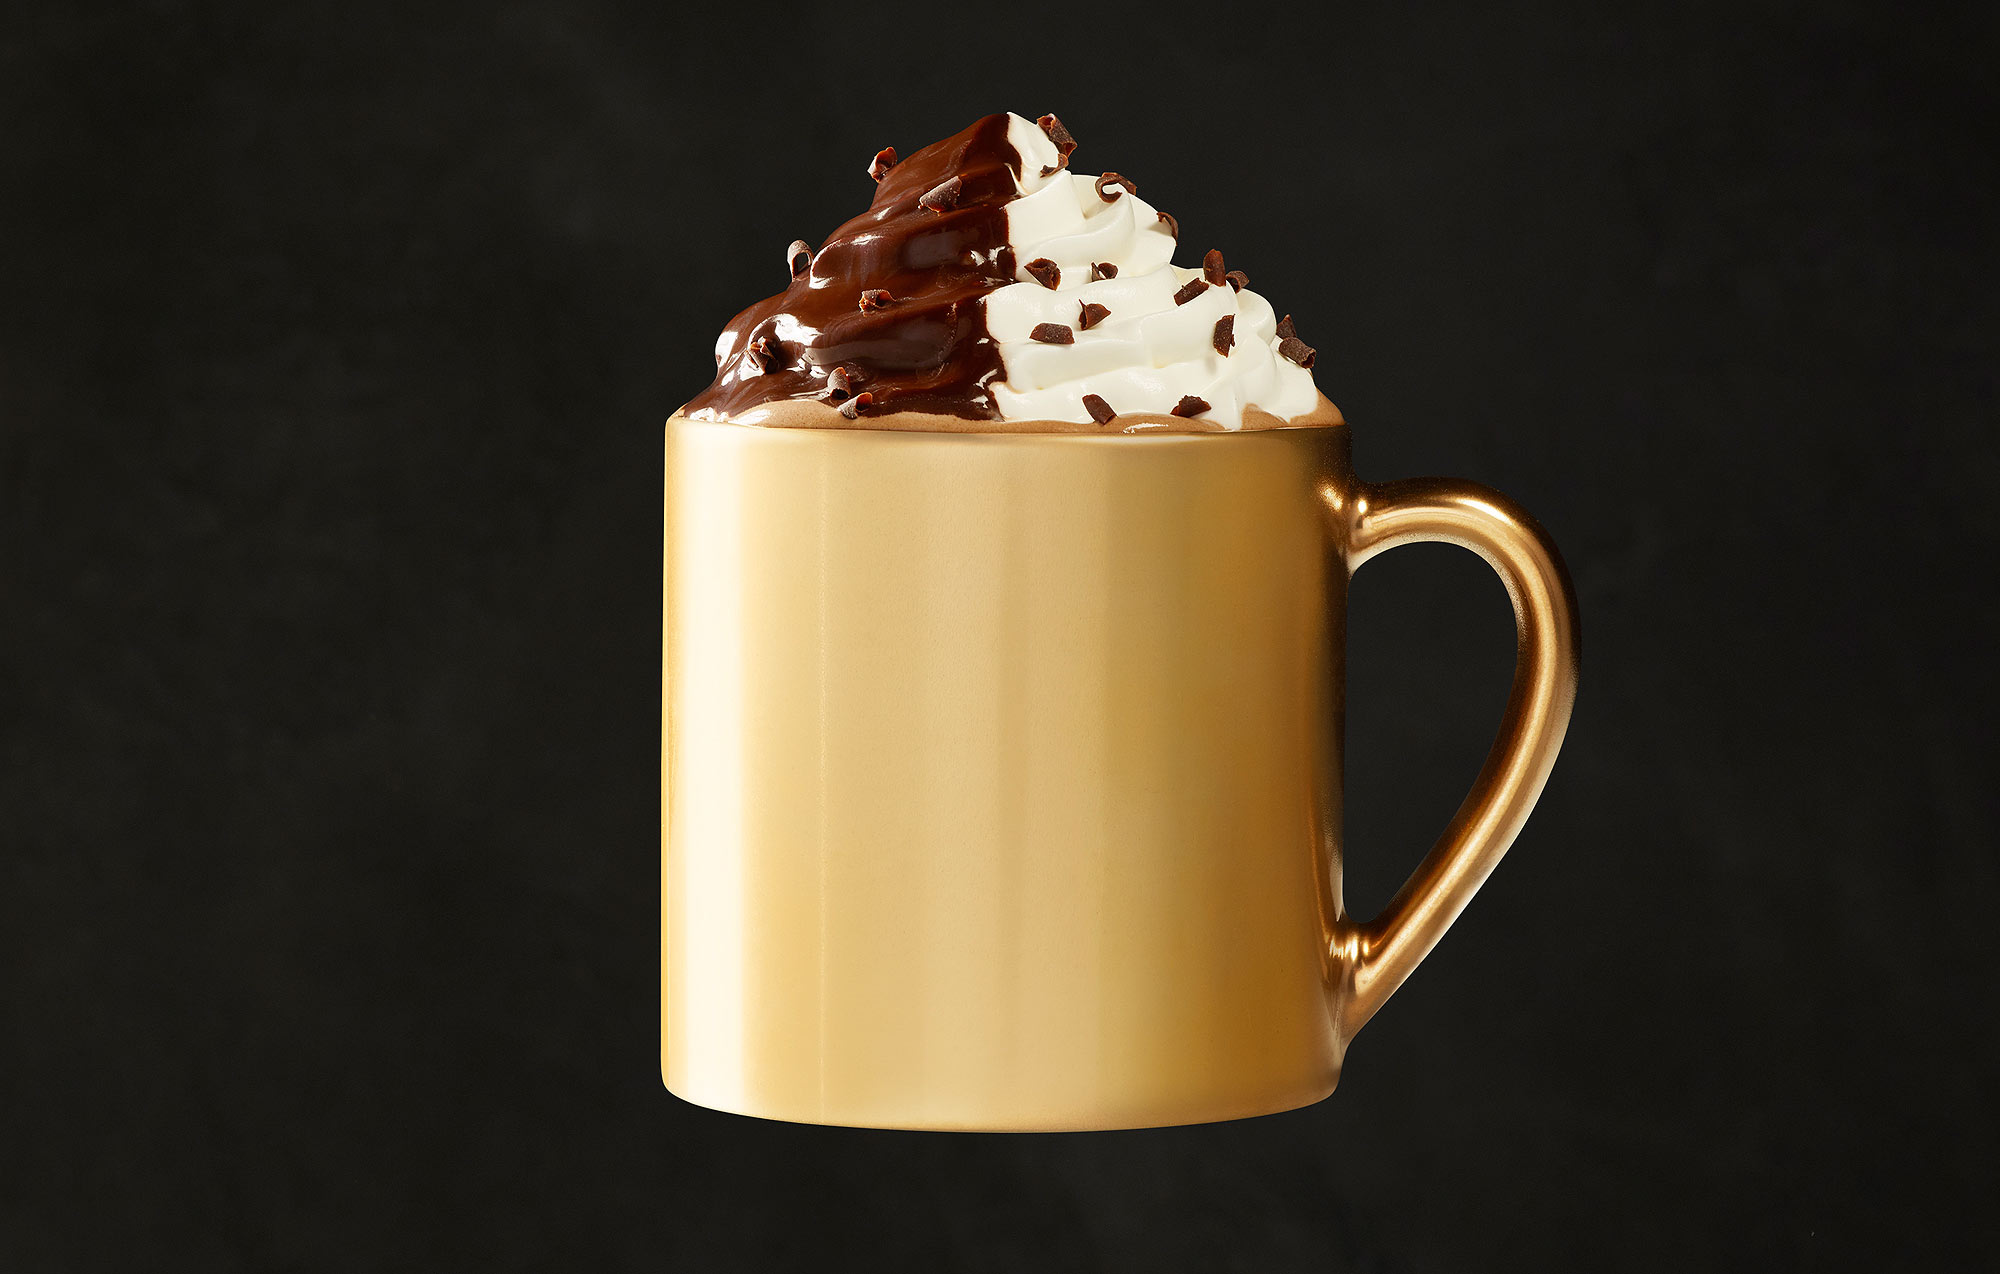 Starbucks Has 3 New Beverages for People Who Really Love Chocolate